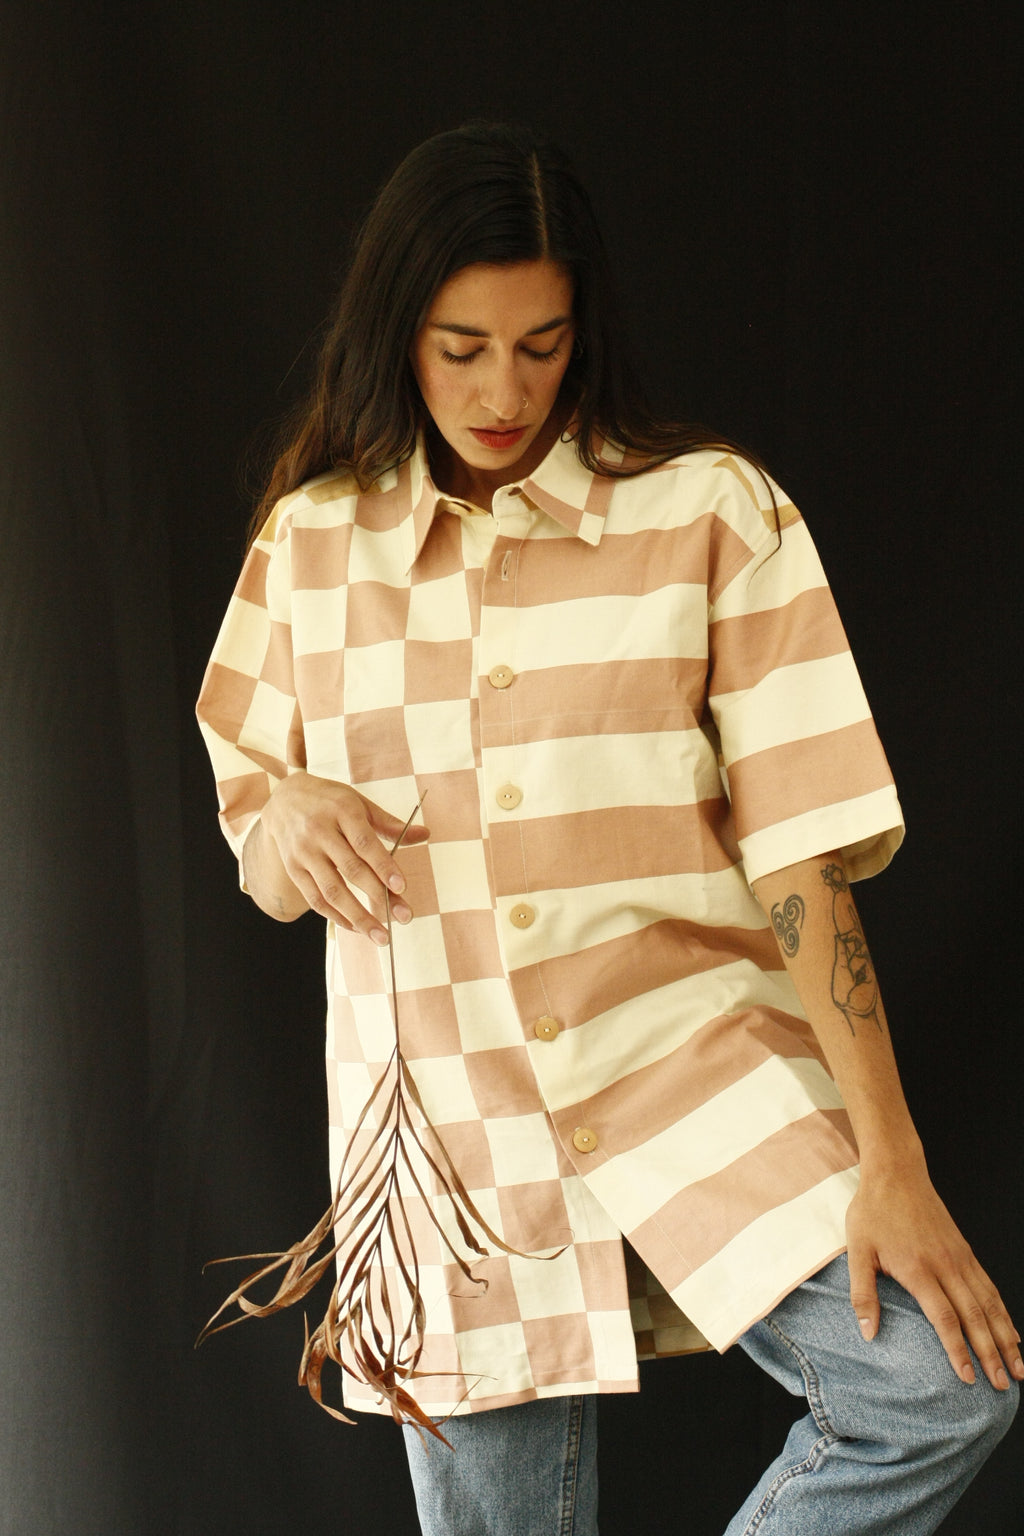 The fabric of this garment was found in Shibuya, Tokyo. The design was inspired by the street style, art and architecture of Japan. Deadstock fabrics put together to create this unique unisex shirt. Wear it with pants or as a dress. INGREDIENTS 100% cotton Wood buttons Ethically made in Ecuador. Sustainable fashion, handmade, natural fibers, vintage textiles and upcycled materials.